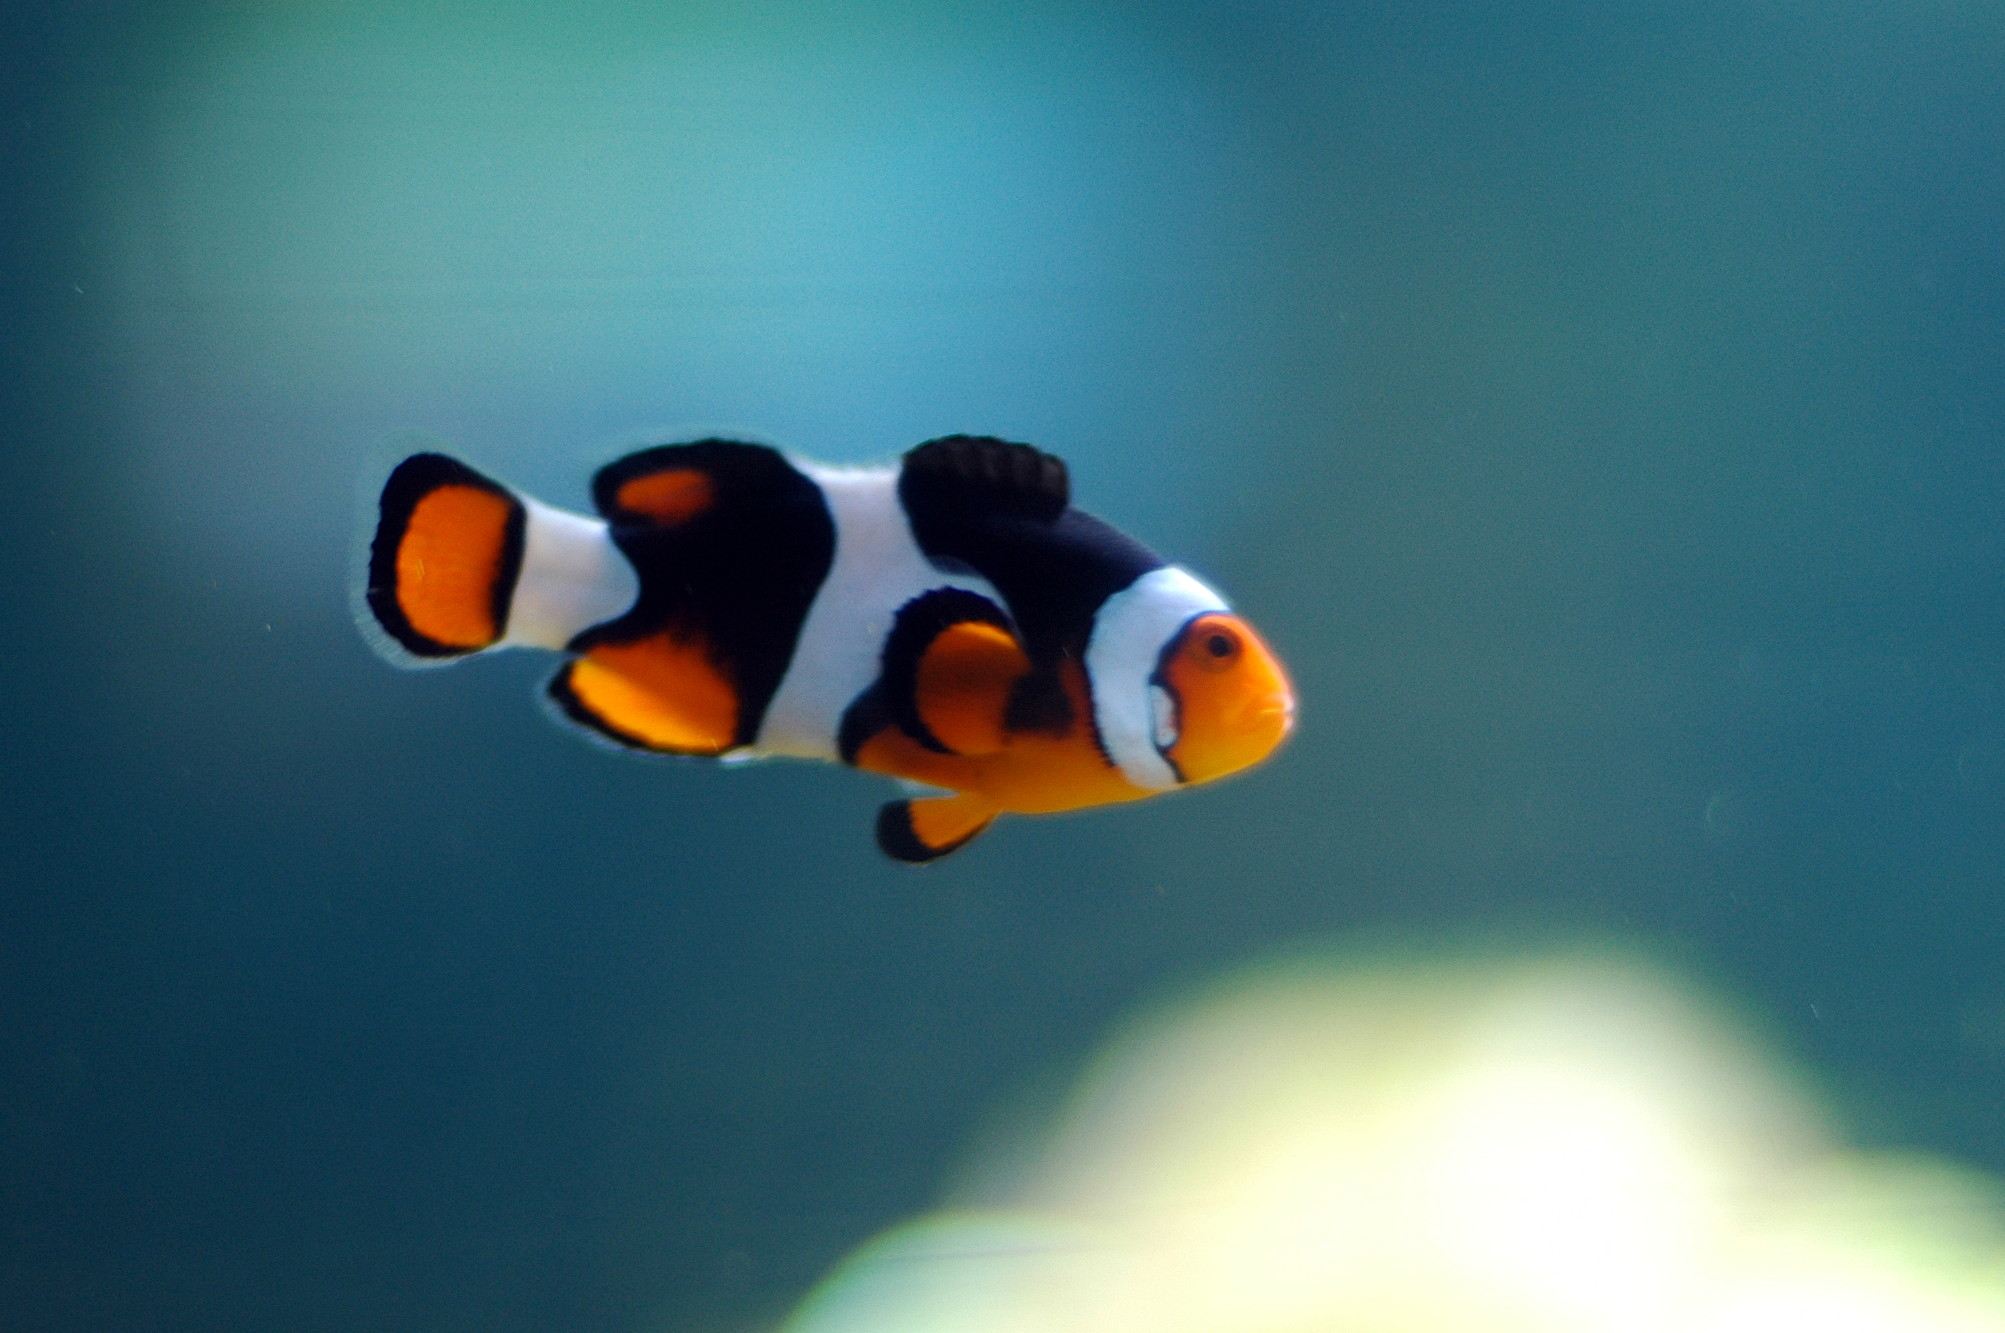 http://upload.wikimedia.org/wikipedia/commons/2/29/Clown_Fish_Swimming.jpg